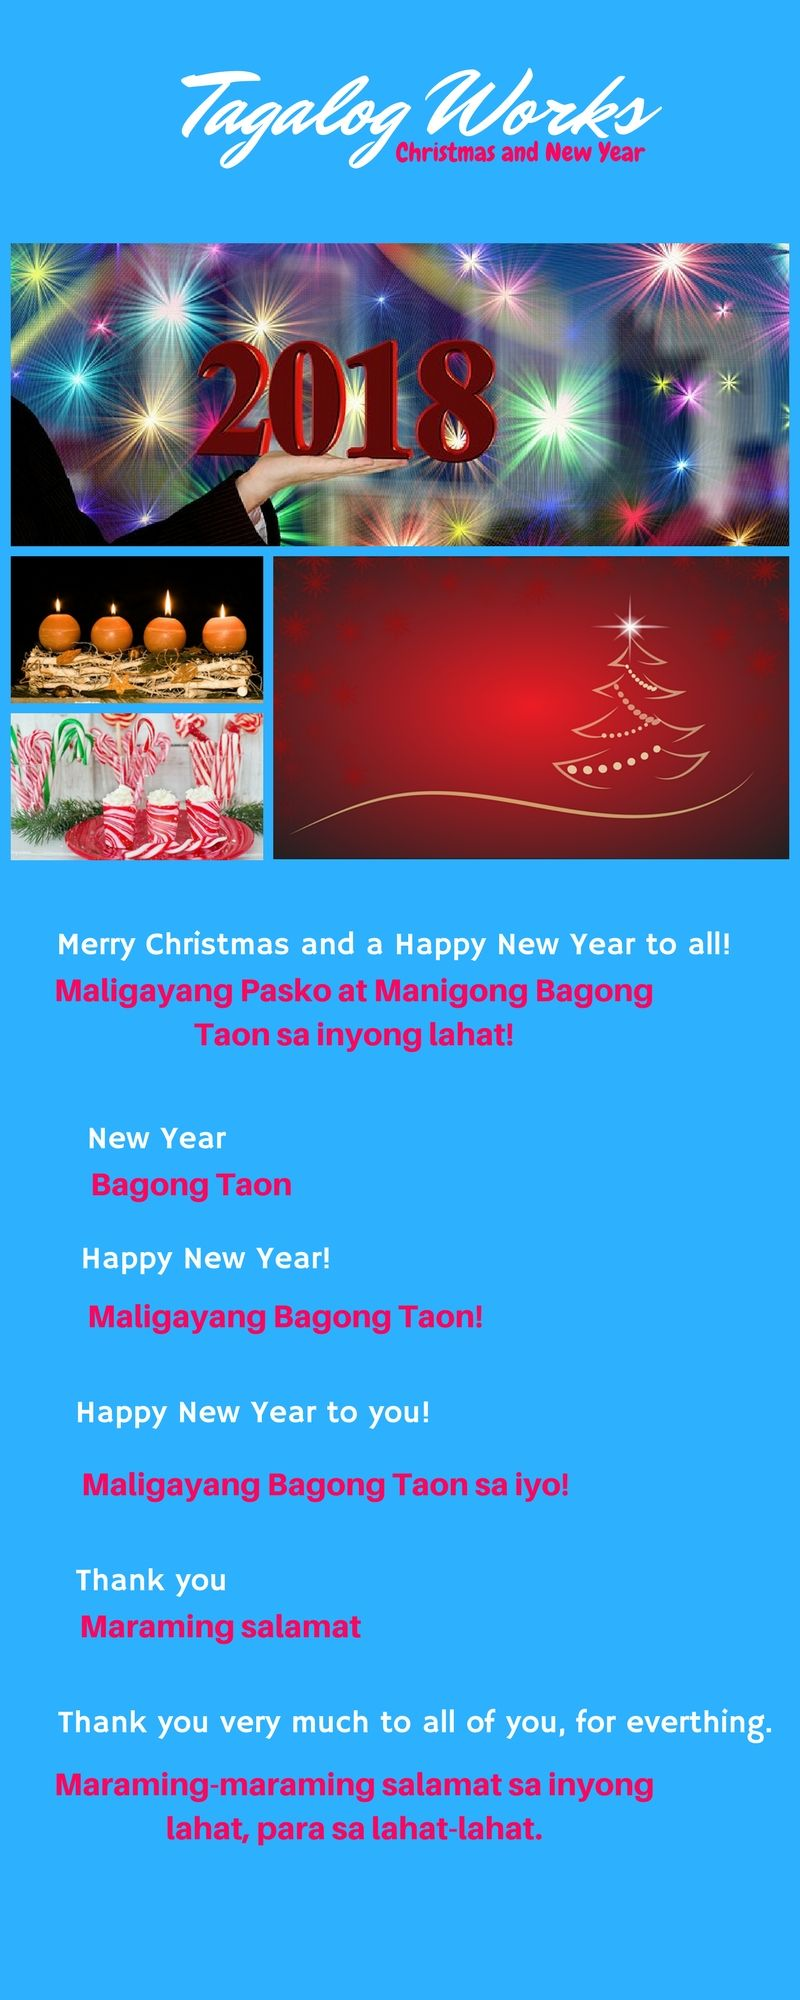 Christmas and new year greetings in tagalog learning tagalog christmas and new year greetings in tagalog m4hsunfo